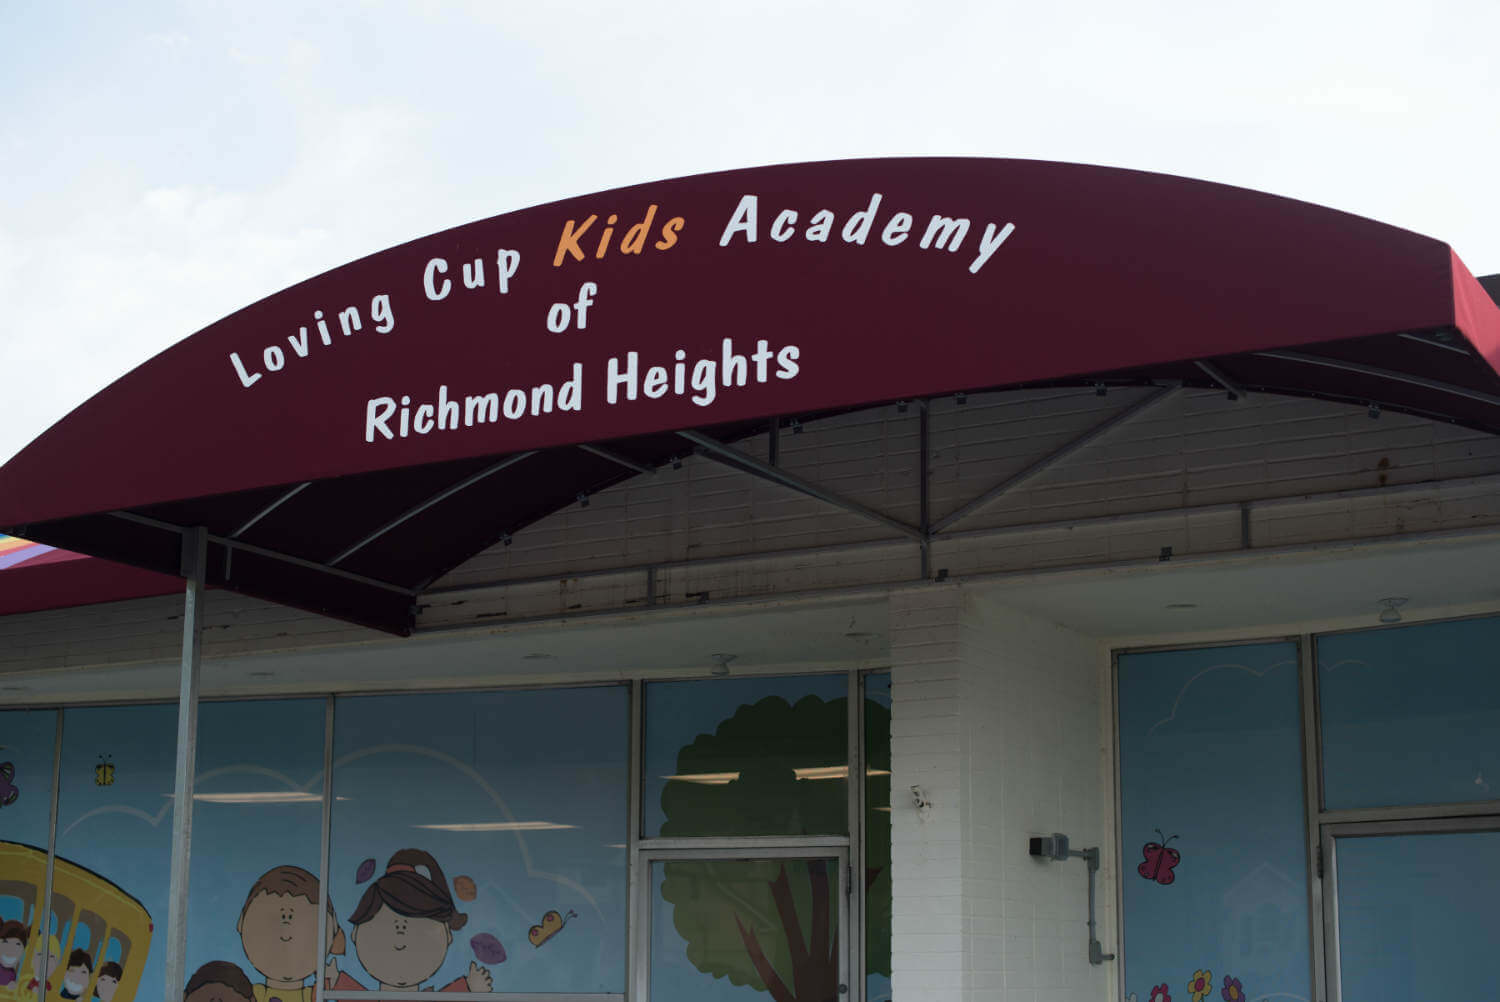 Loving Cup Kids Academy